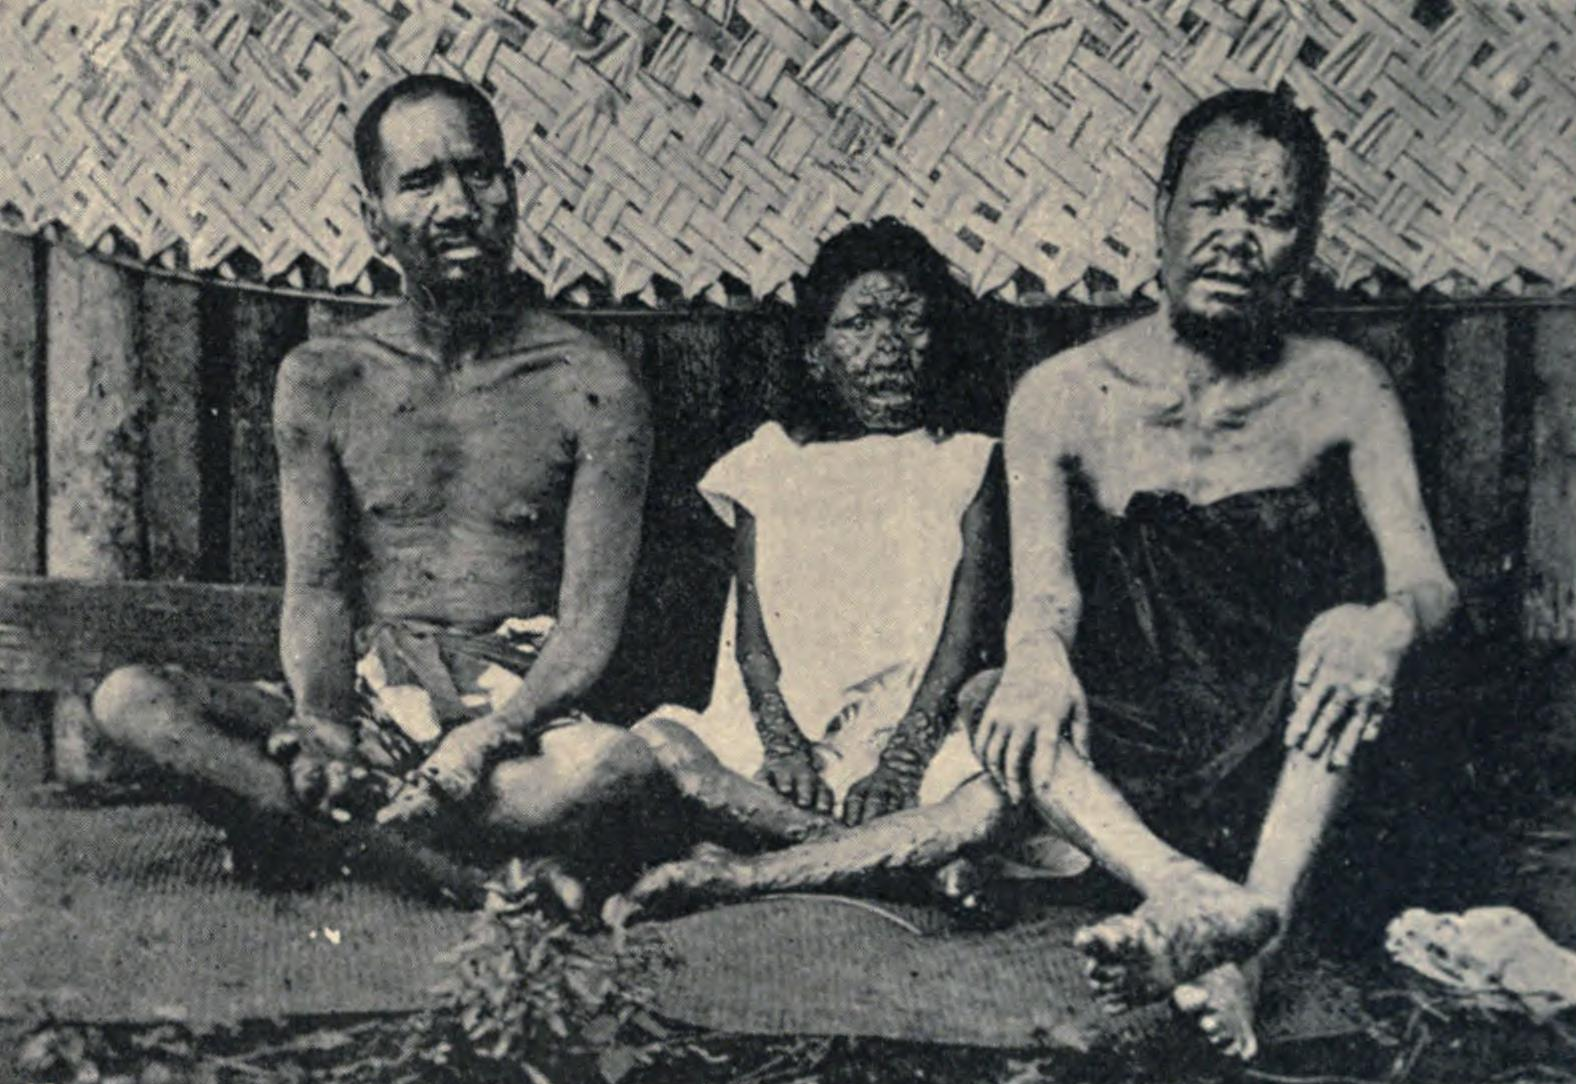 Bodies deformed by Leprosy - Tahiti 1898